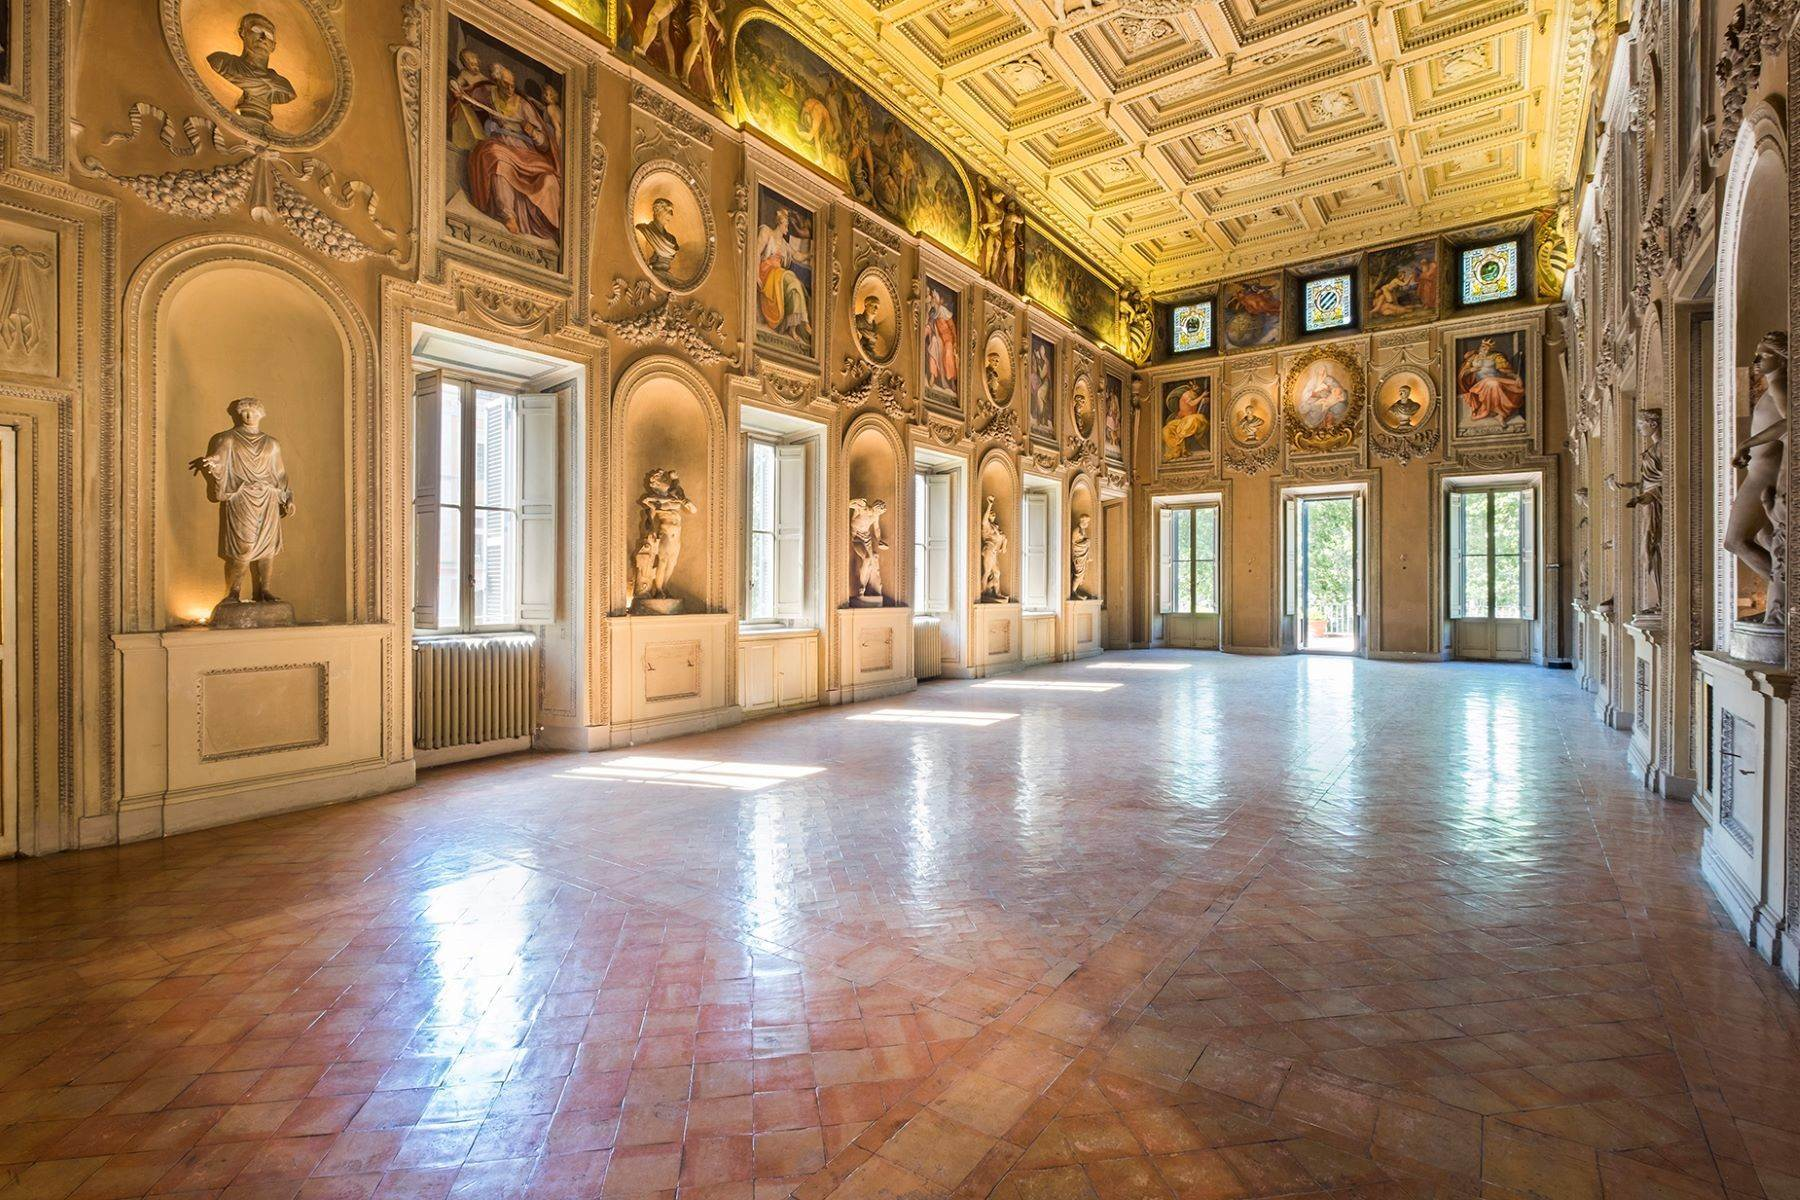 Property 为 销售 在 Noble floor apartment in Palazzo Sacchetti, a pearl of the late Renaissance 罗马, 罗马 意大利